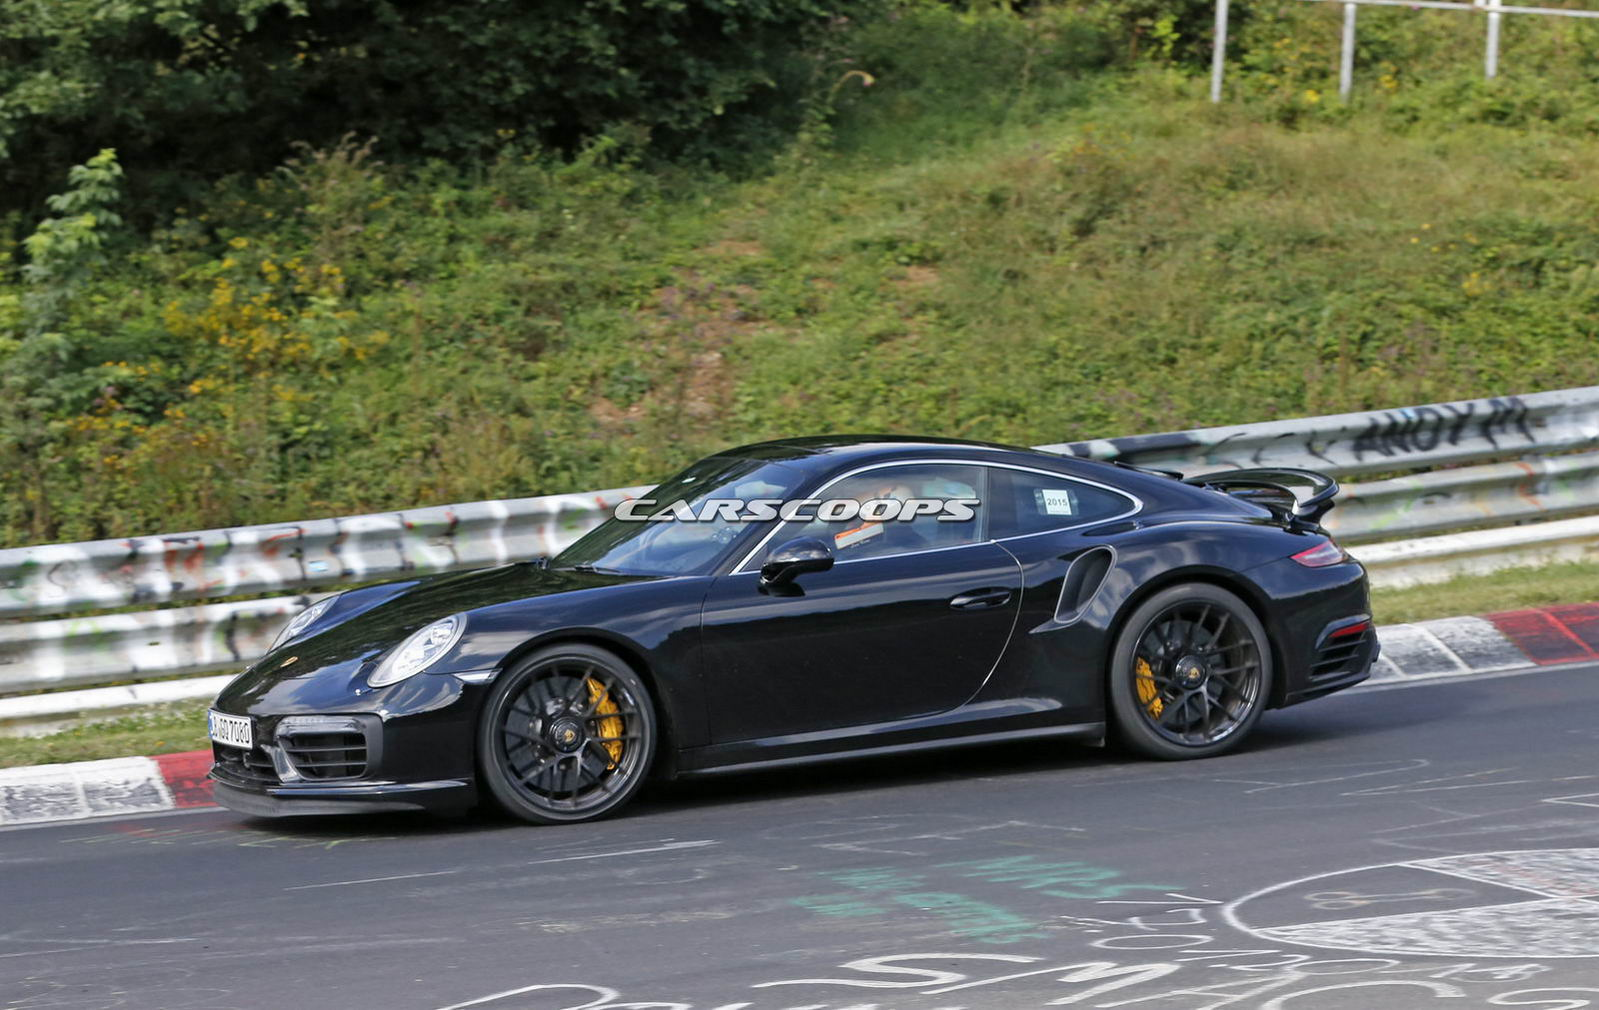 refreshed 2016 porsche 911 turbo s spotted camo free for the first time carscoops. Black Bedroom Furniture Sets. Home Design Ideas